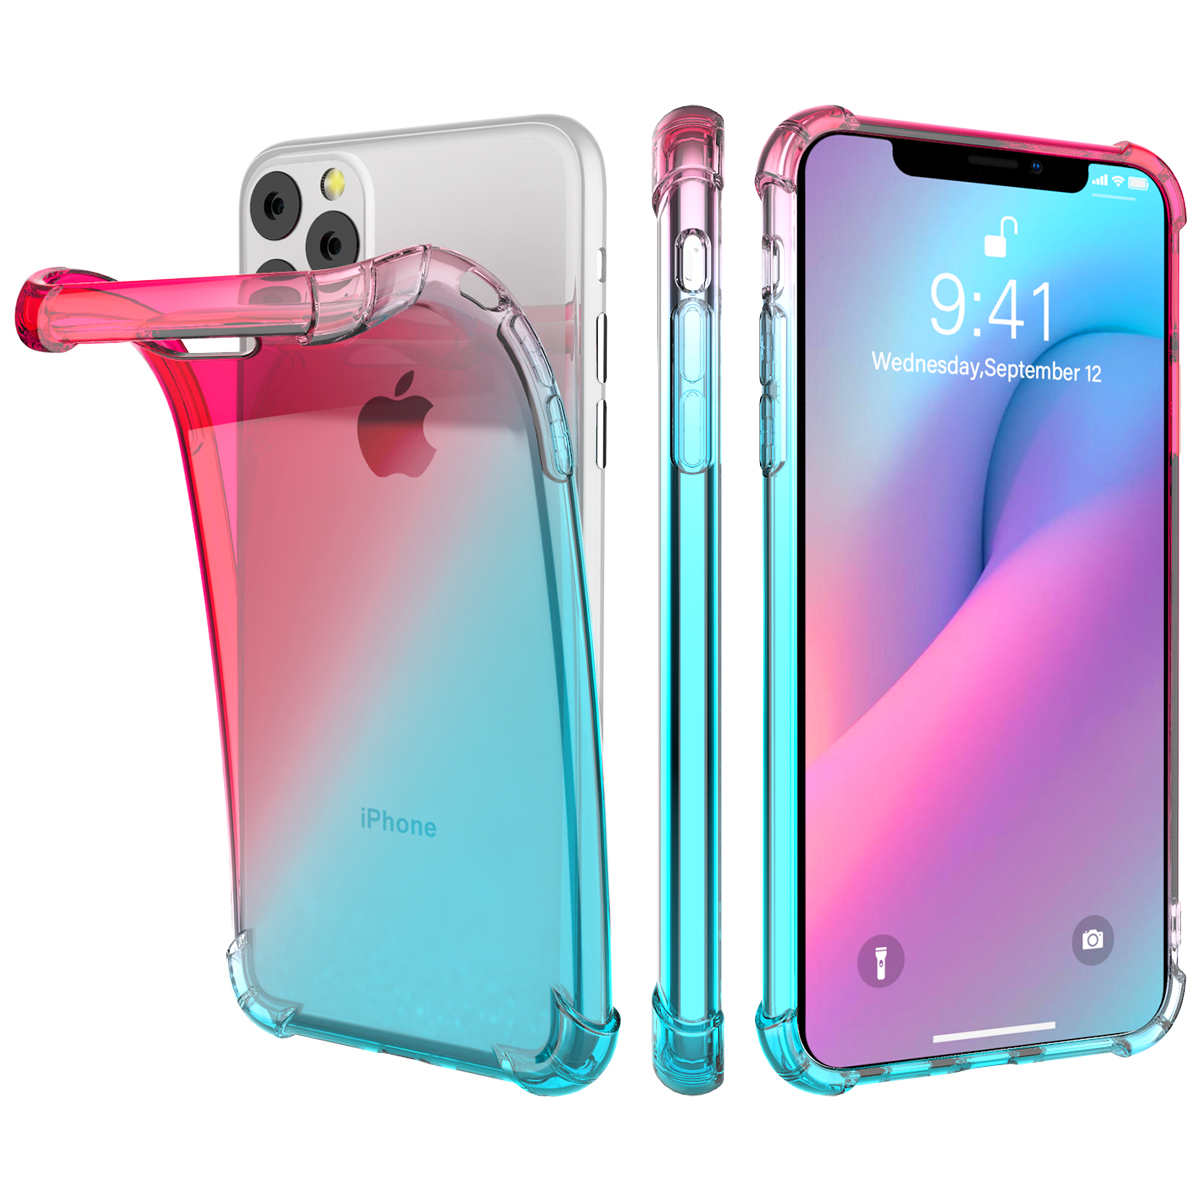 Gradient Soft TPU Case for iPhone 11/11 Pro/11 Pro Max 43